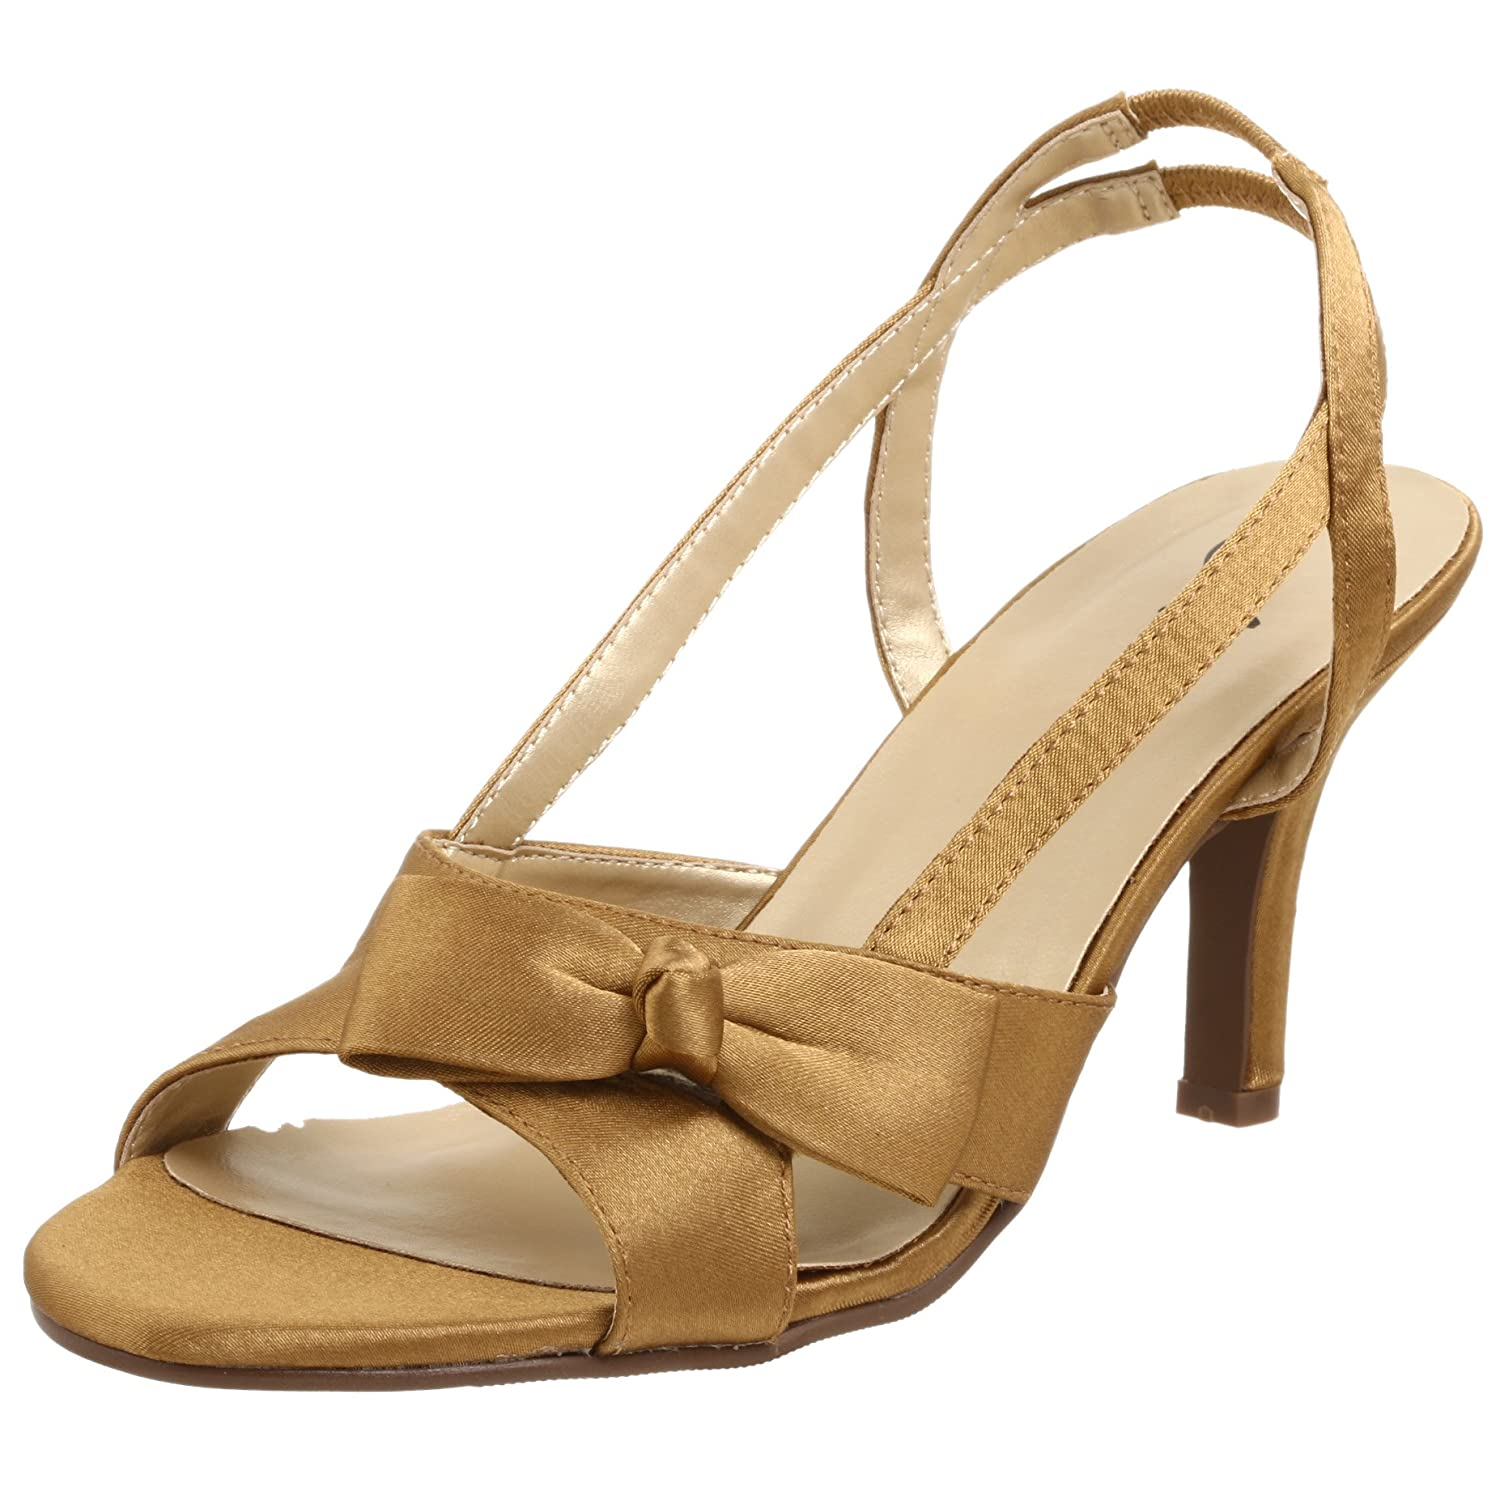 Annie Women's Elegant Evening Sandal - Free Overnight Shipping & Return Shipping: Endless.com from endless.com